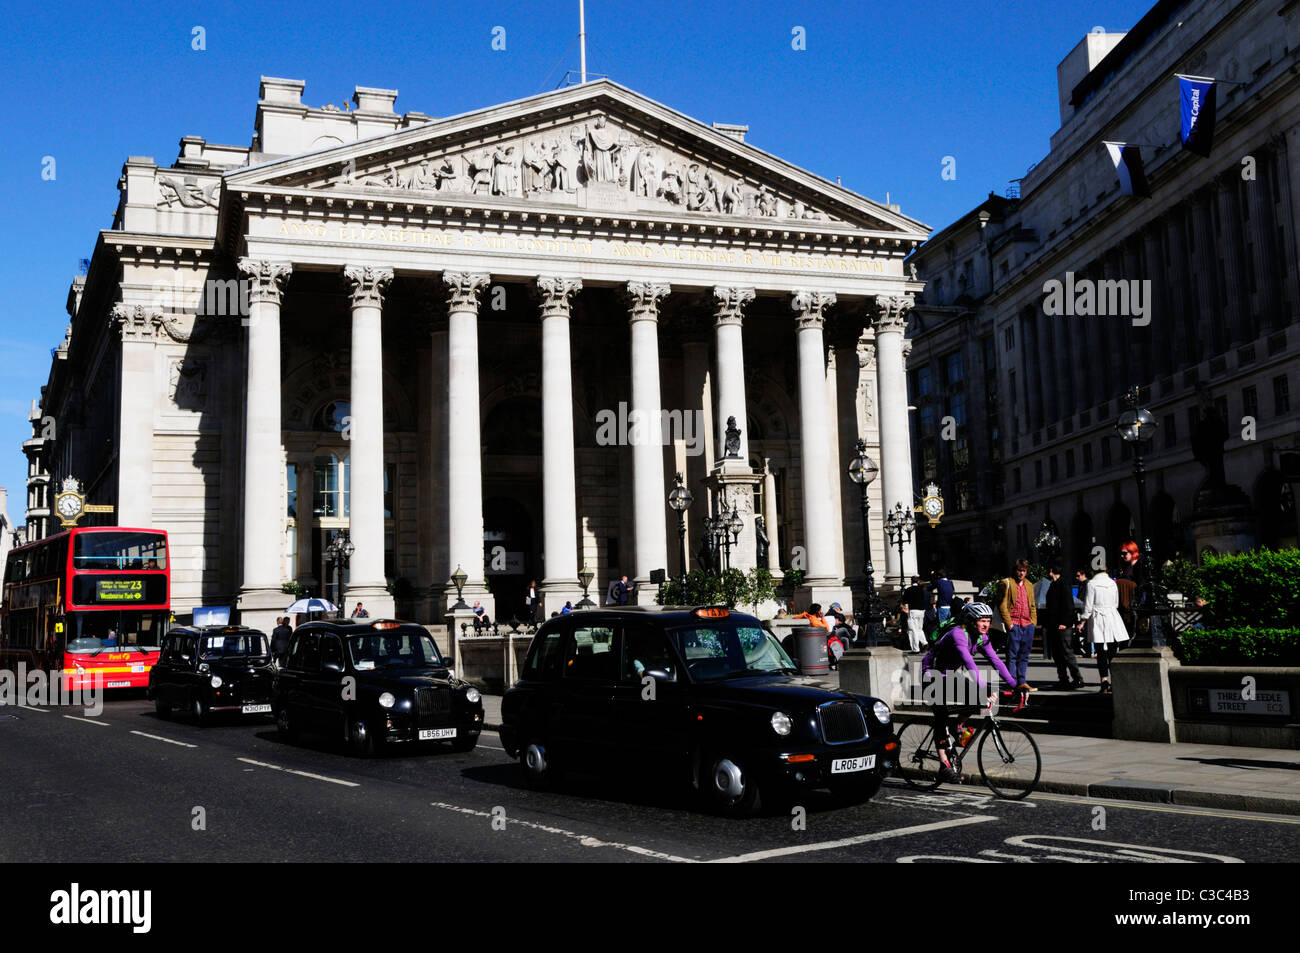 Taxis outside The Royal Exchange, Threadneedle Street, London, England, UK - Stock Image